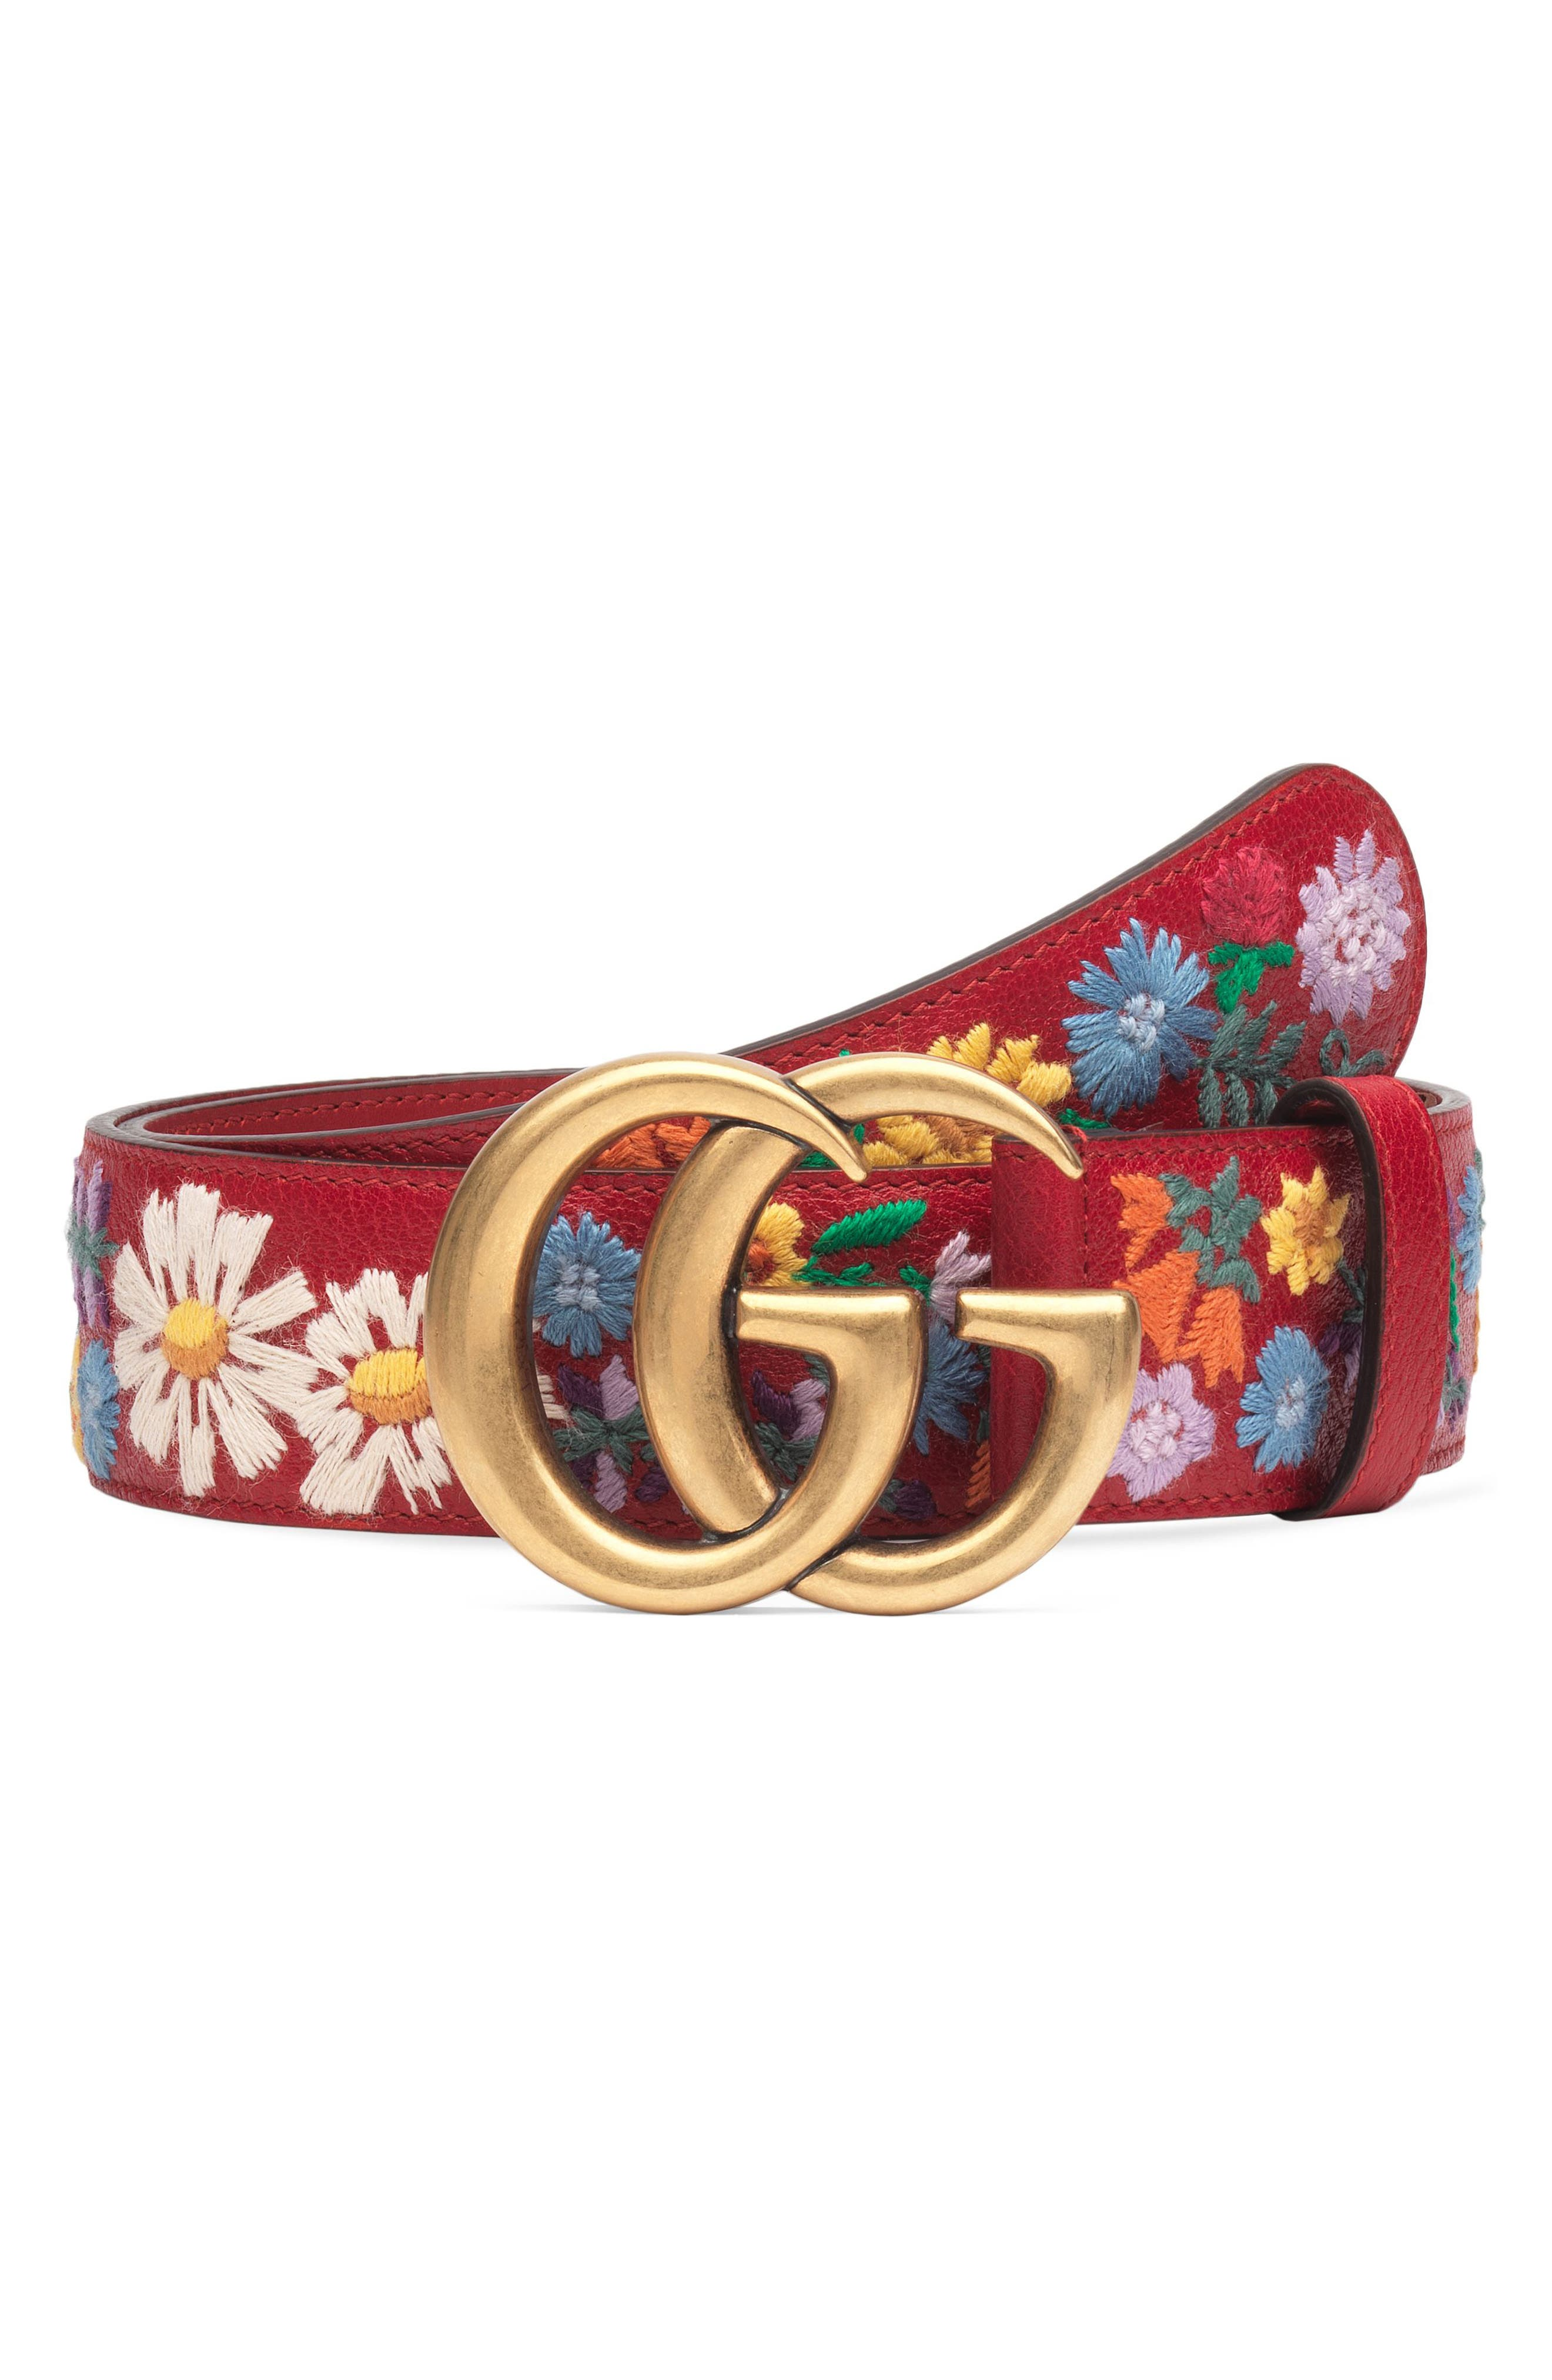 GG Flower Embroidered Calfskin Leather Belt,                         Main,                         color, 600